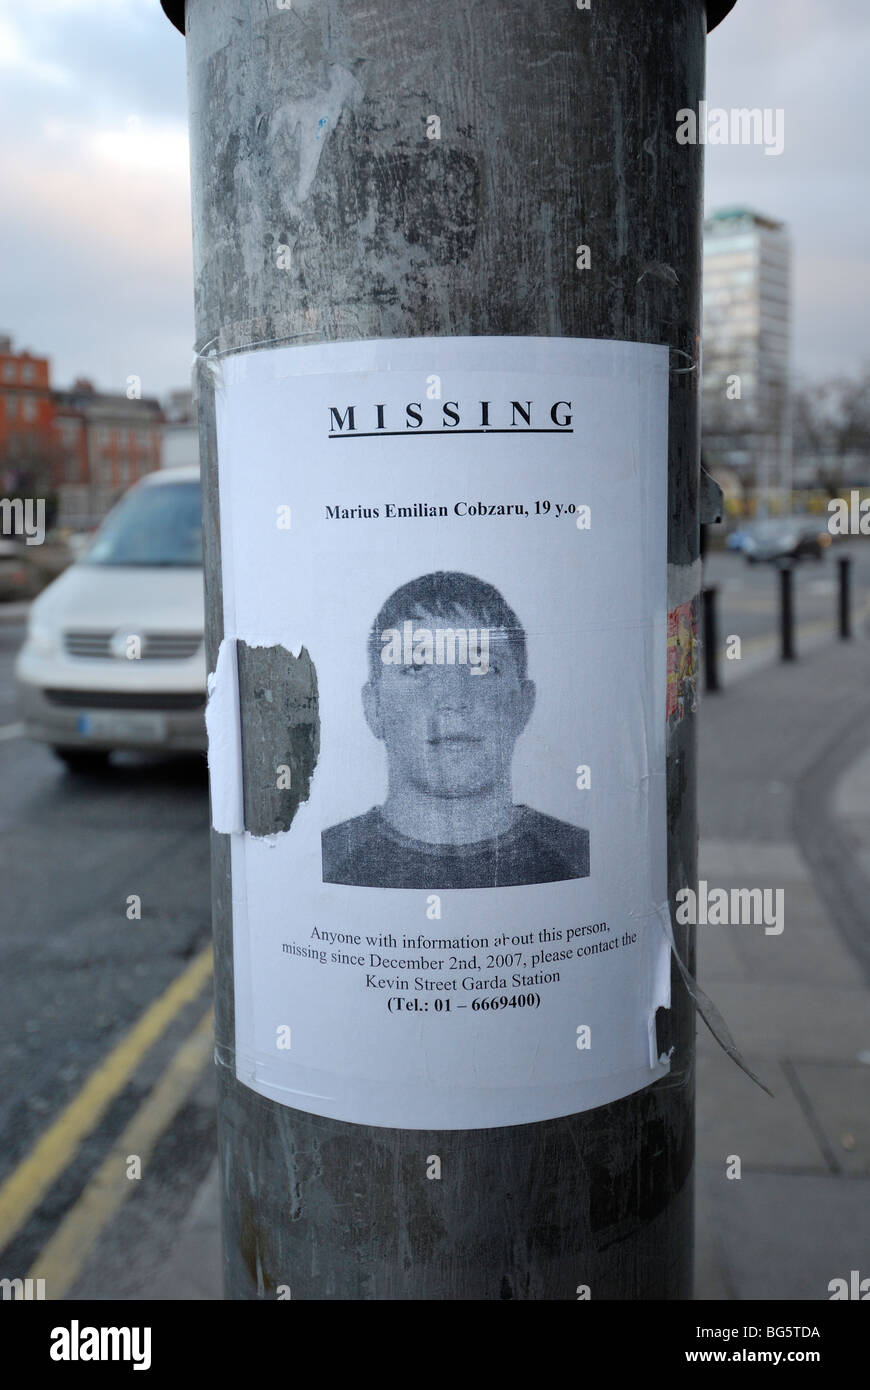 Missing Person Poster On Lamp Post In Dublin Ireland Stock Photo Missing  Person Poster On Lamp Post In Dublin Ireland BG5TDA Stock Photo Missing  Person ...  Missing People Posters